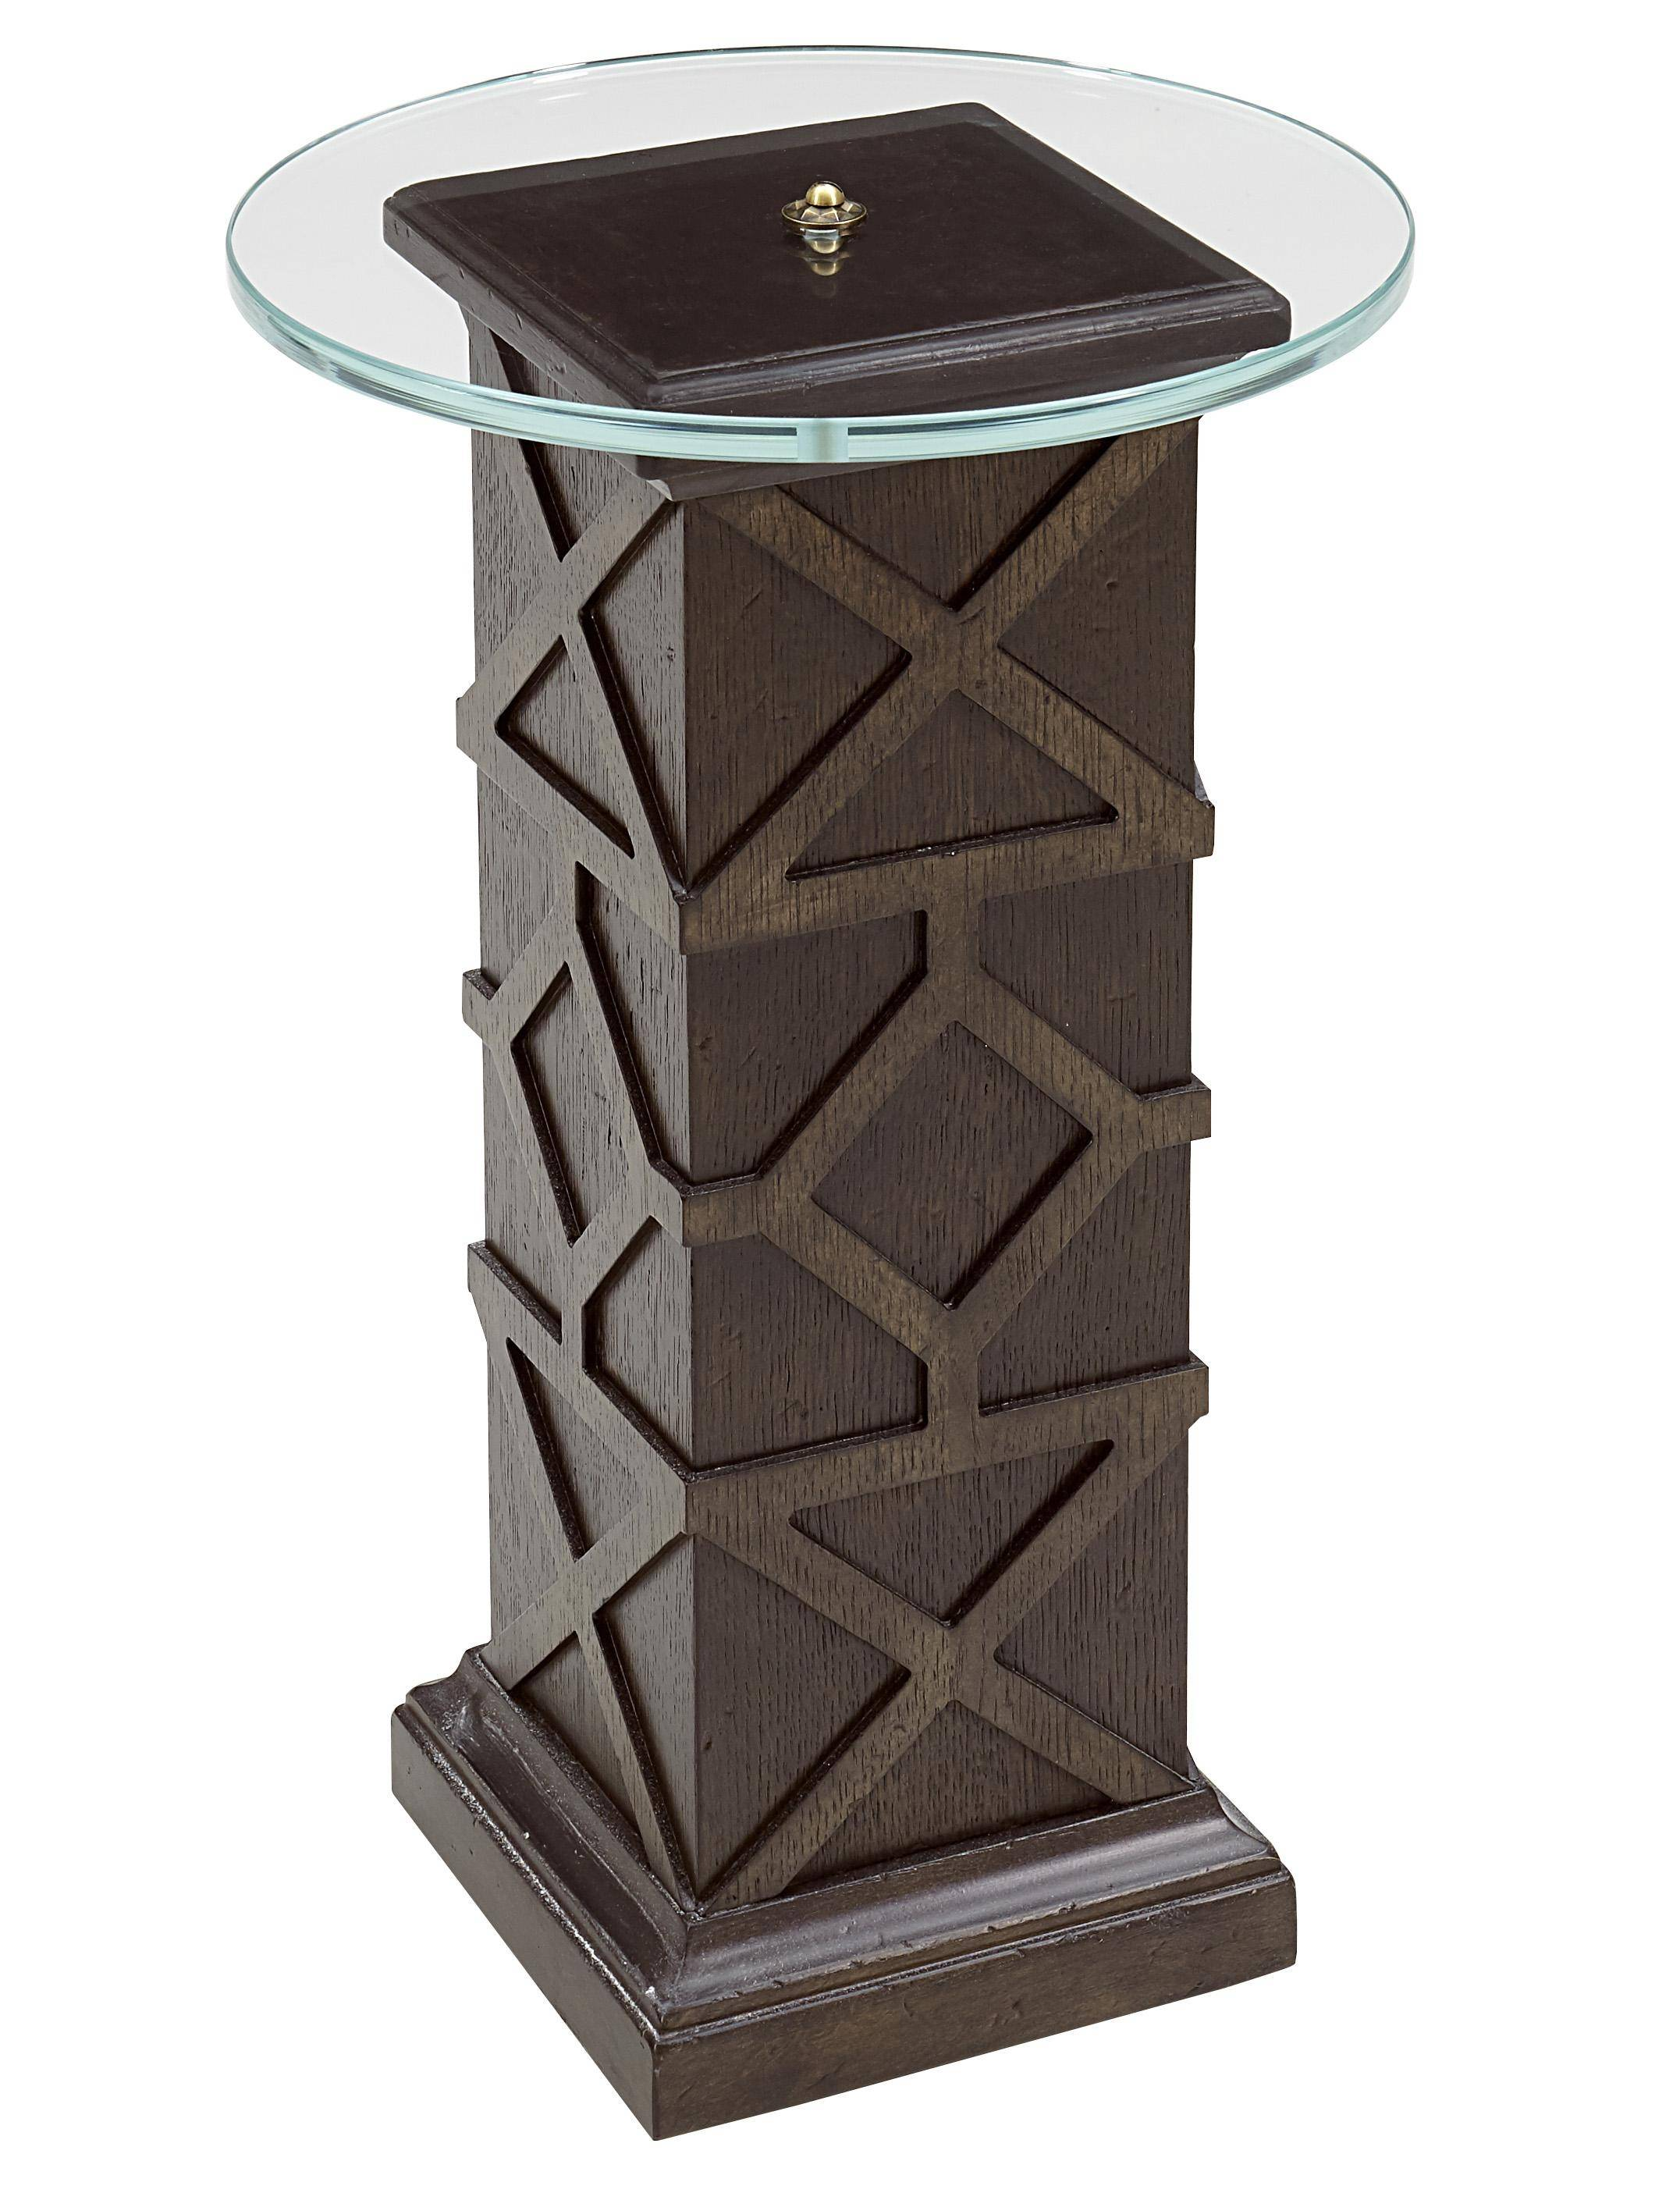 traditional brown accent table american chapter reviews small patio and chairs dining decor unfinished legs coffee sets target high bar kitchen black end with lamp attached